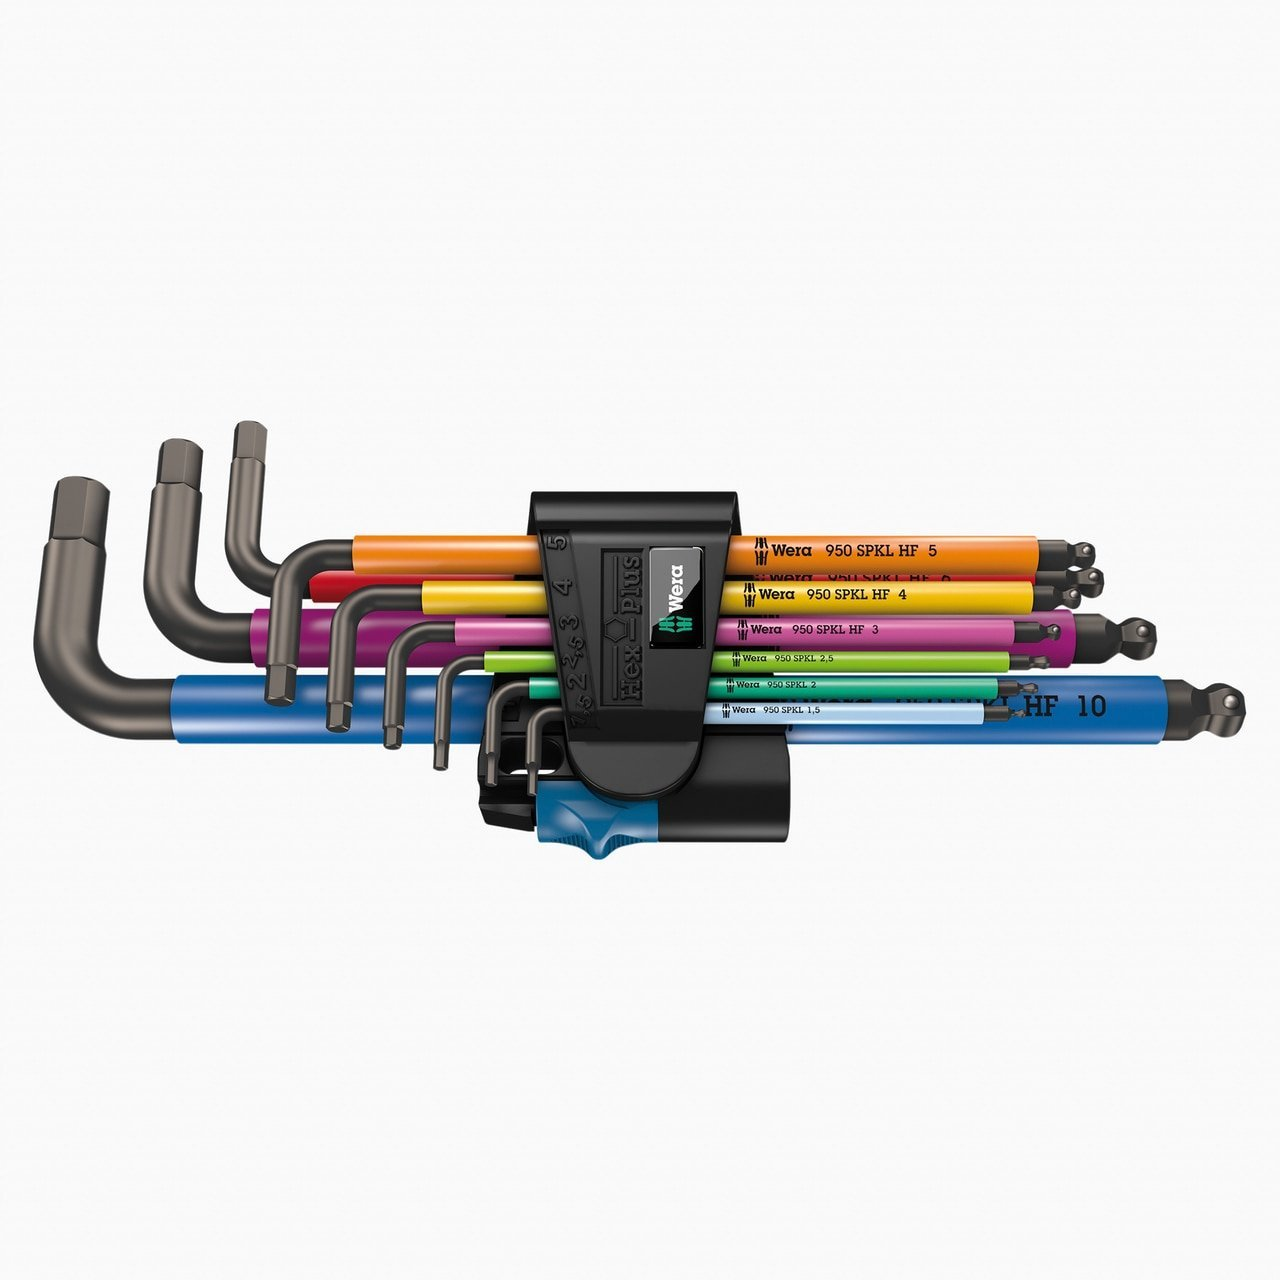 Wera 022210 Multicolor Metric L-key Set with Holding Function